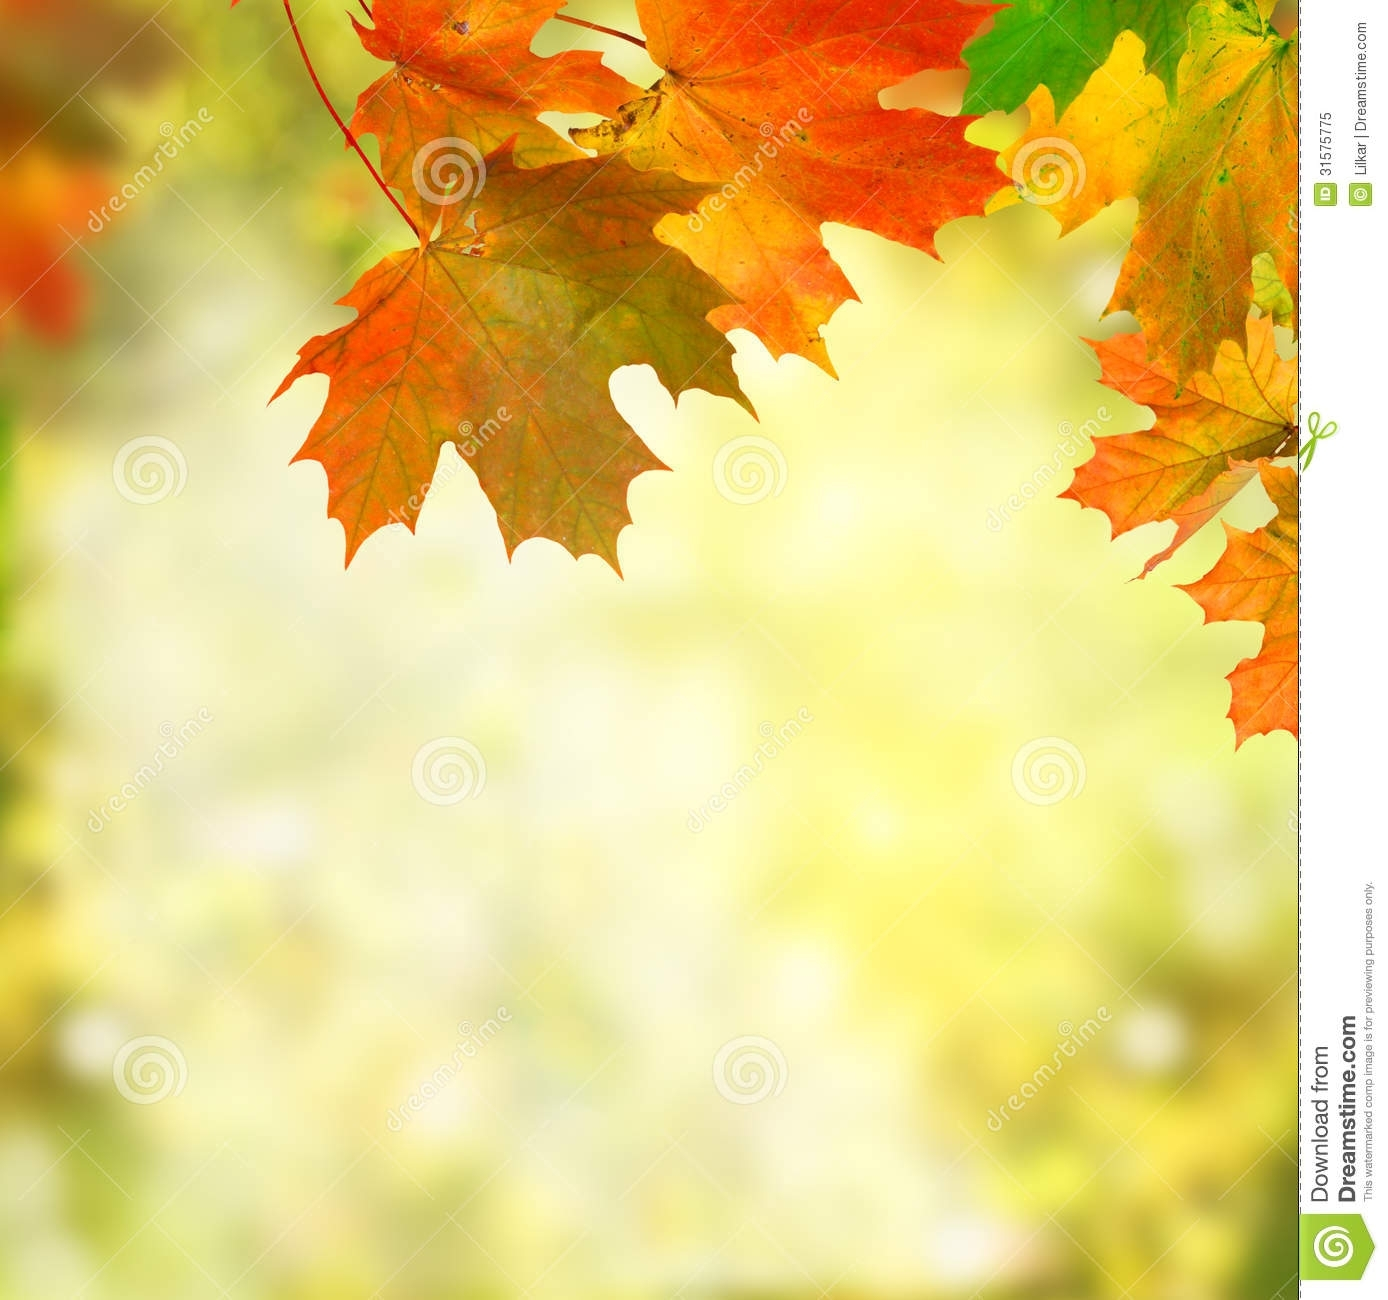 free fall background pictures | http://www.specialswallpaper